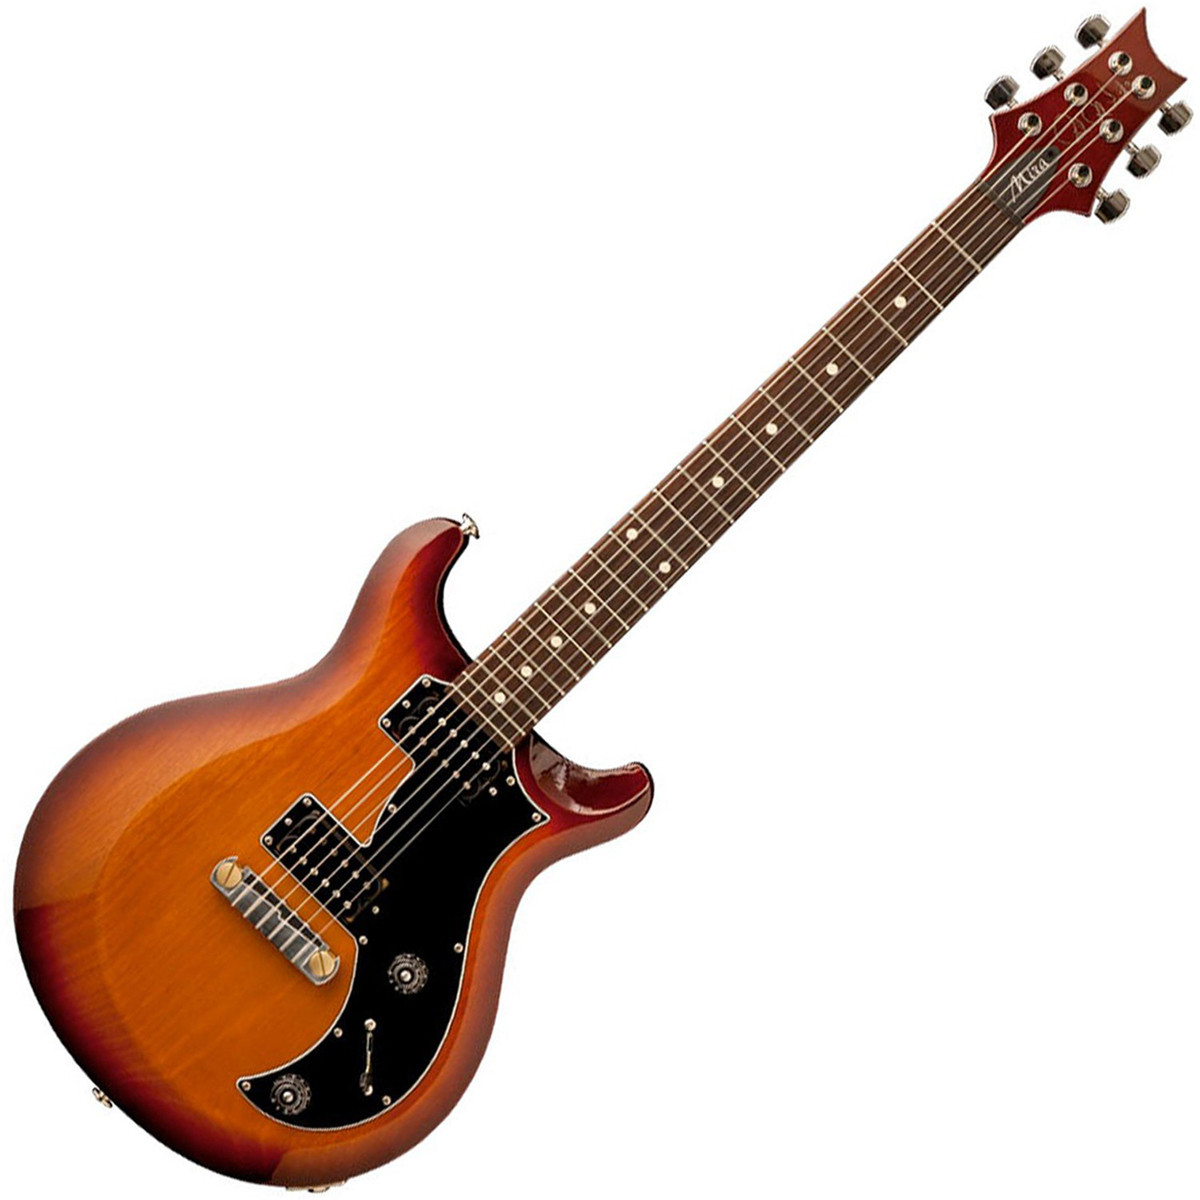 prs s2 mira electric guitar mccarty tobacco sunburst with dot inlays at. Black Bedroom Furniture Sets. Home Design Ideas